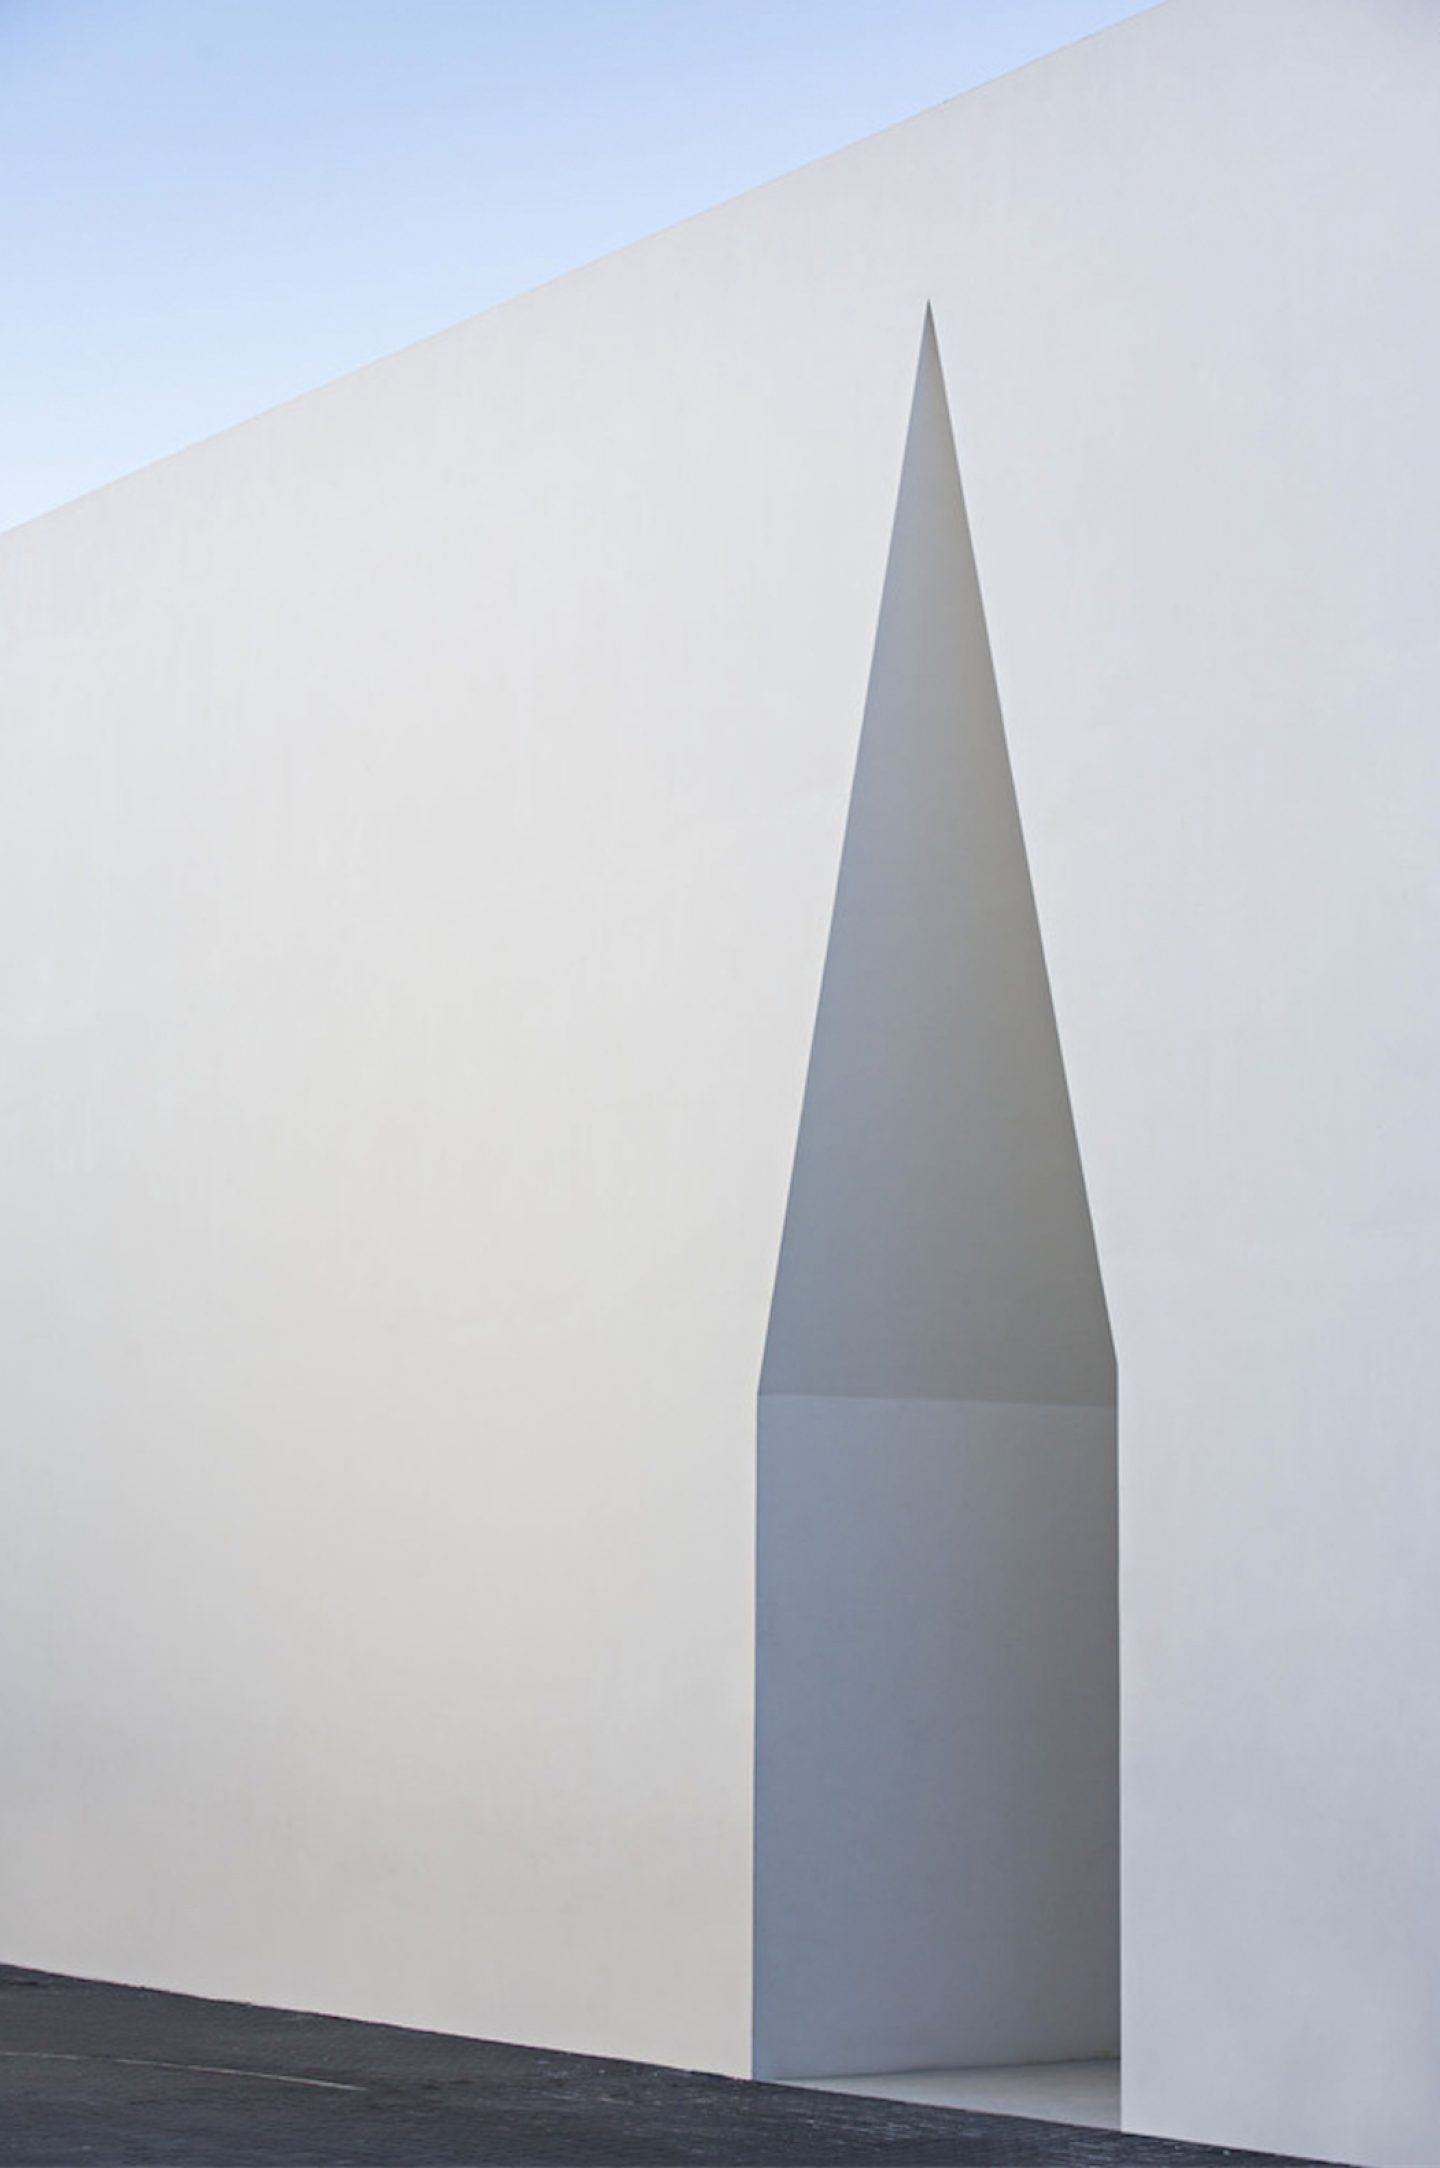 iGNANT_Architecture_Aires_Mateus_Monolithic_Meeting_Center_05